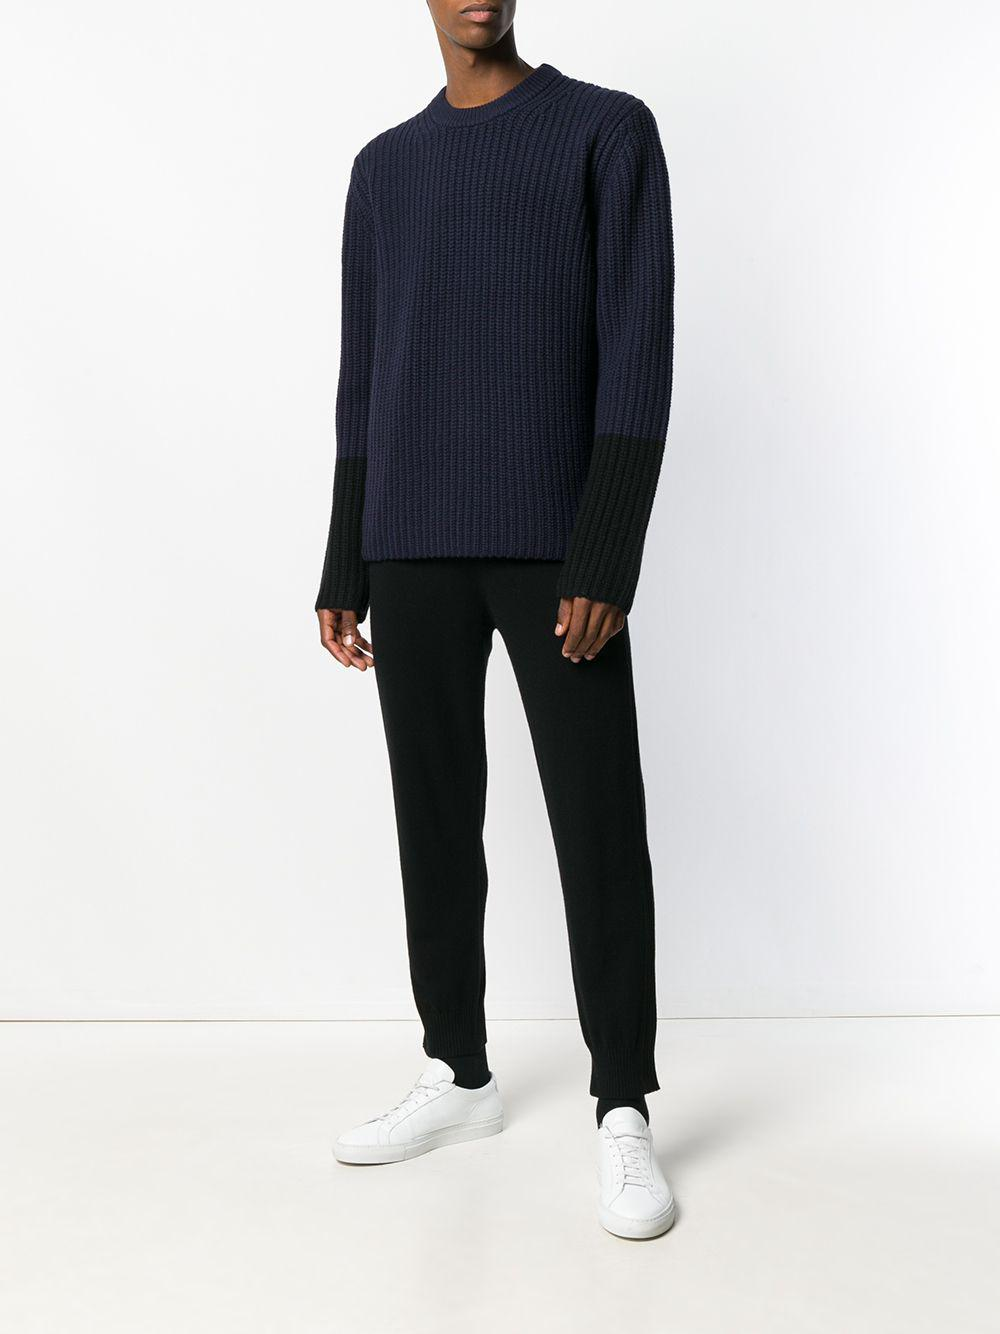 For Joseph In Men Crew Blue Knit Sweater Lyst Neck fqrAwYCq